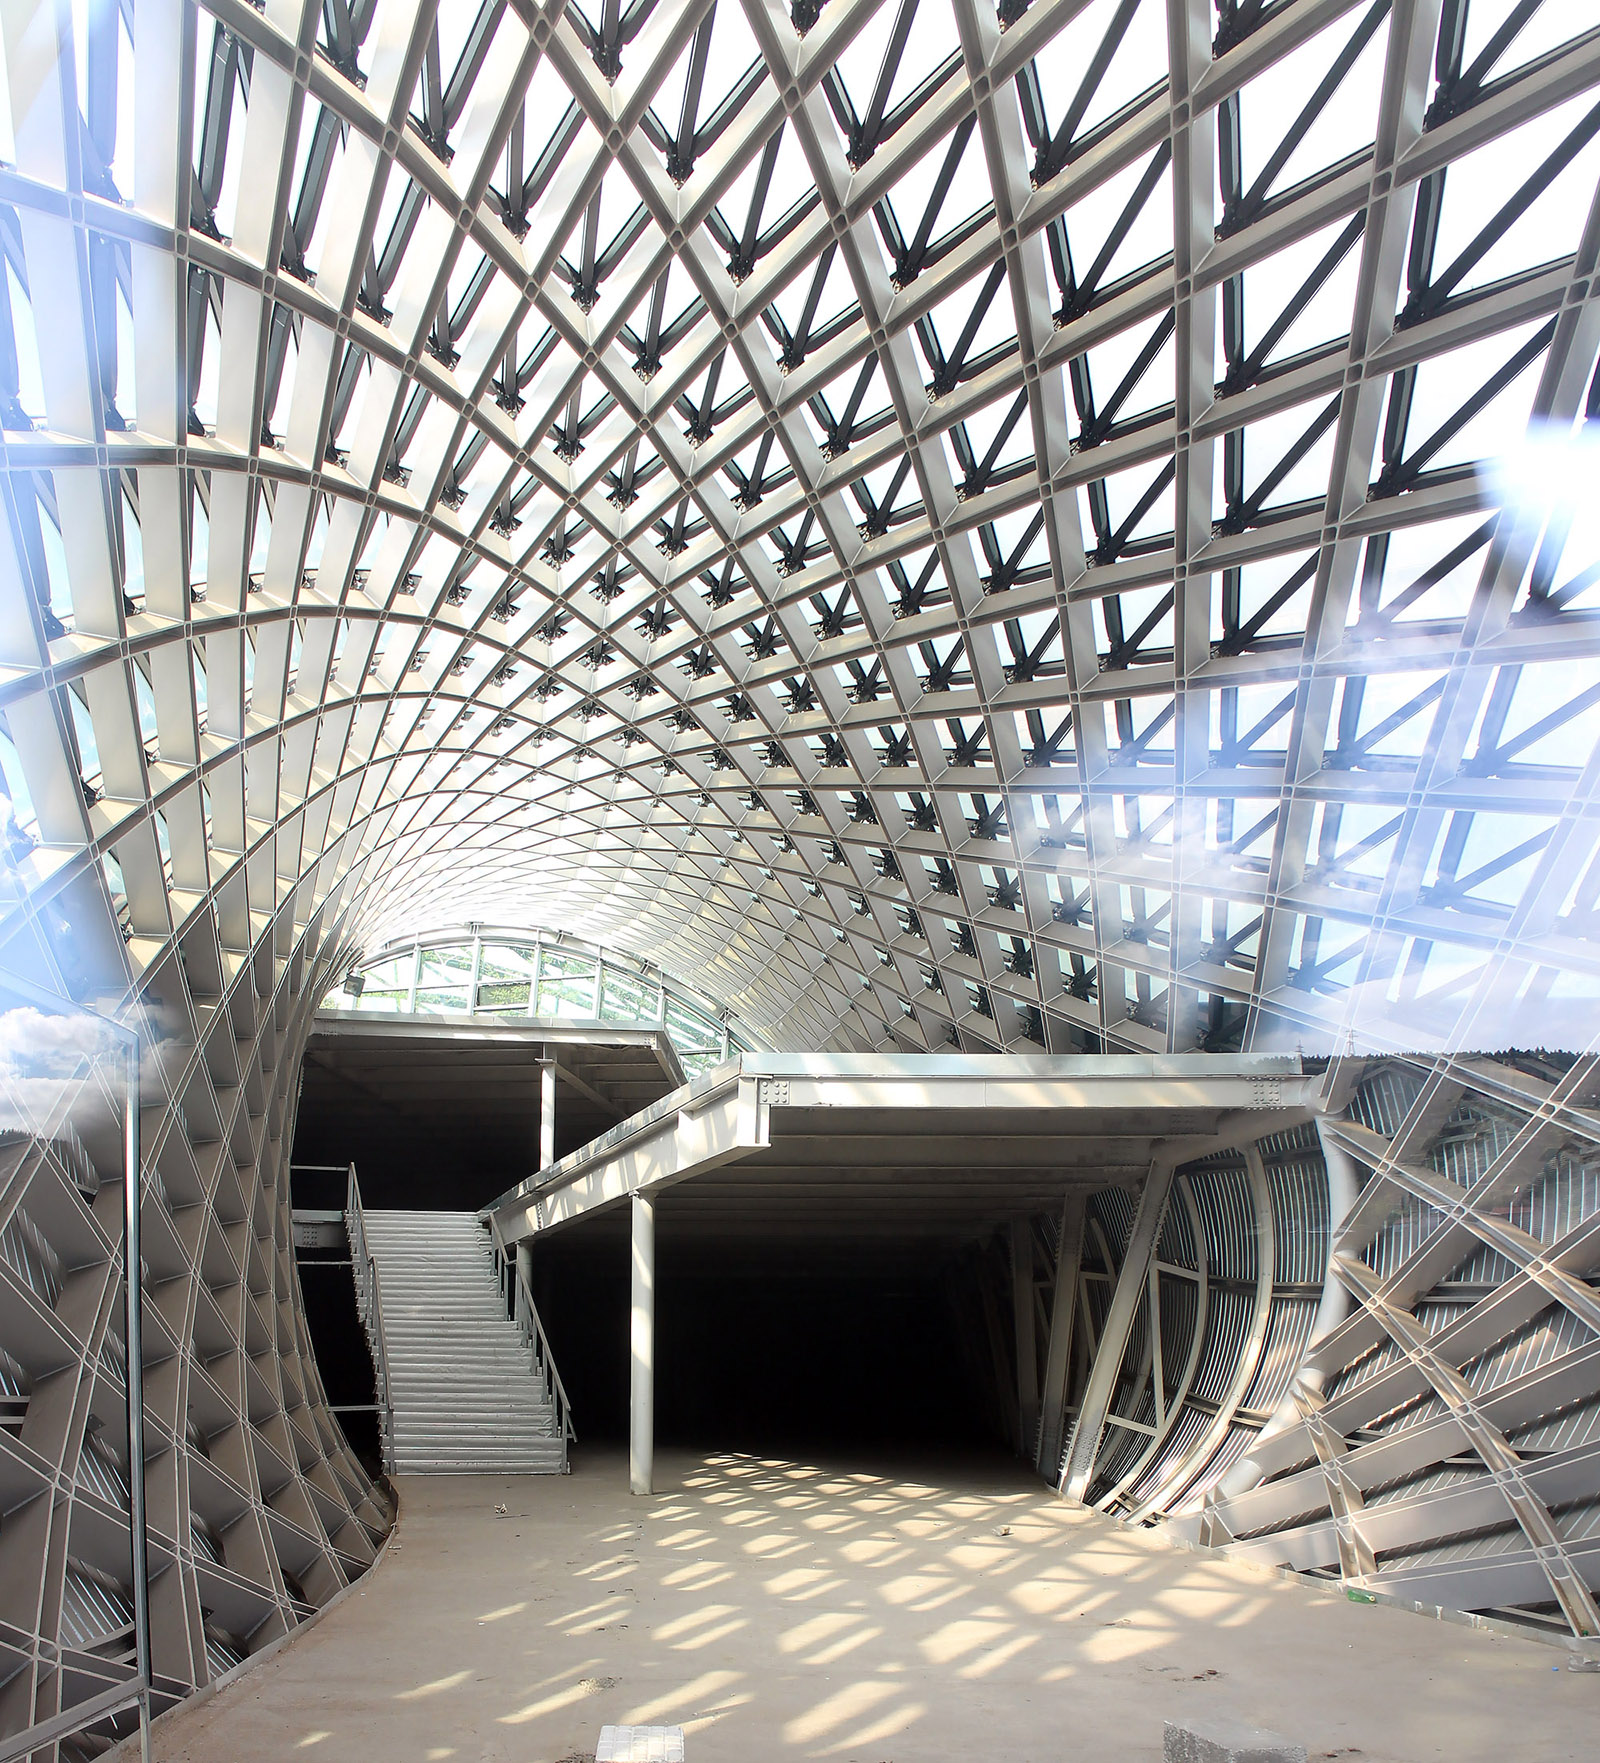 Studio Fuksas' music theatre and exhibition hall in Tbilisi